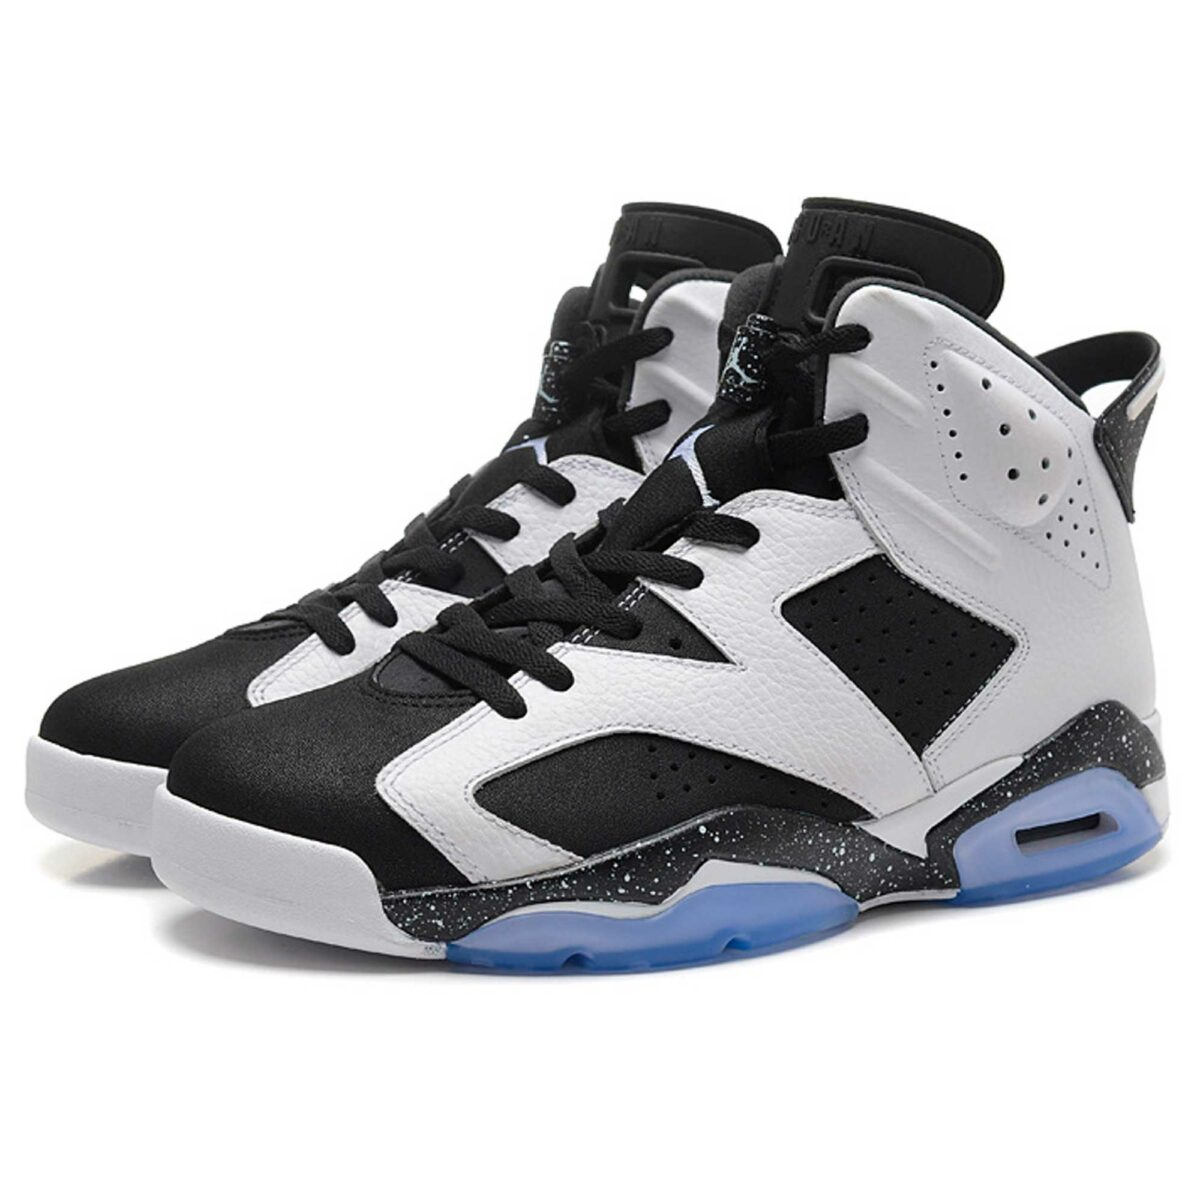 nike air jordan 6 retro black white oreo cool grey 384664-101 интернет магазин